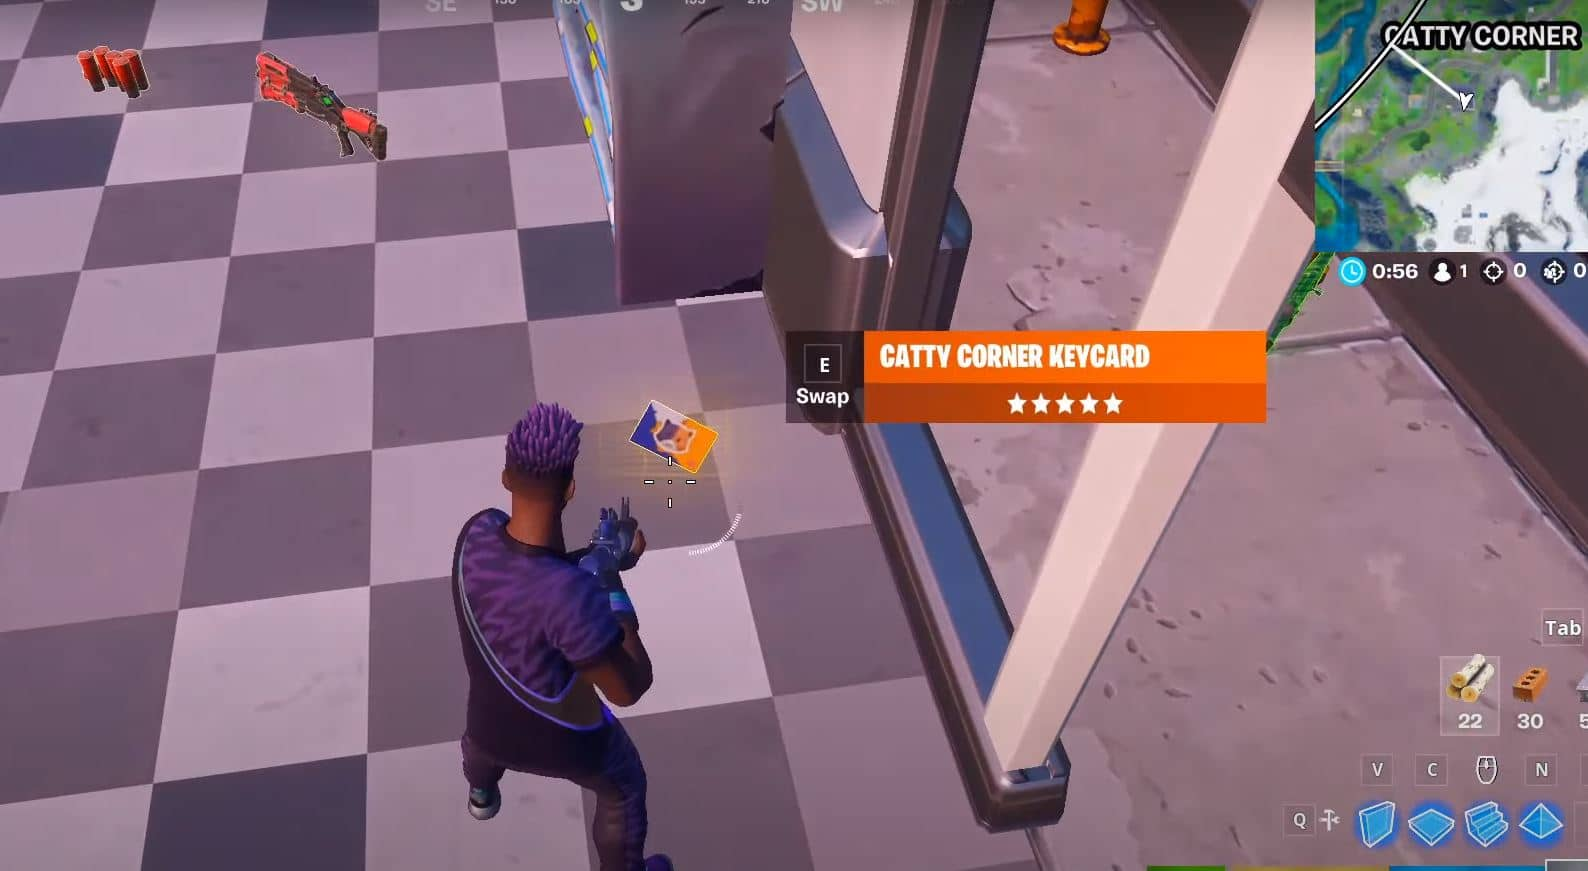 Fortnite Catty Corner Keycard